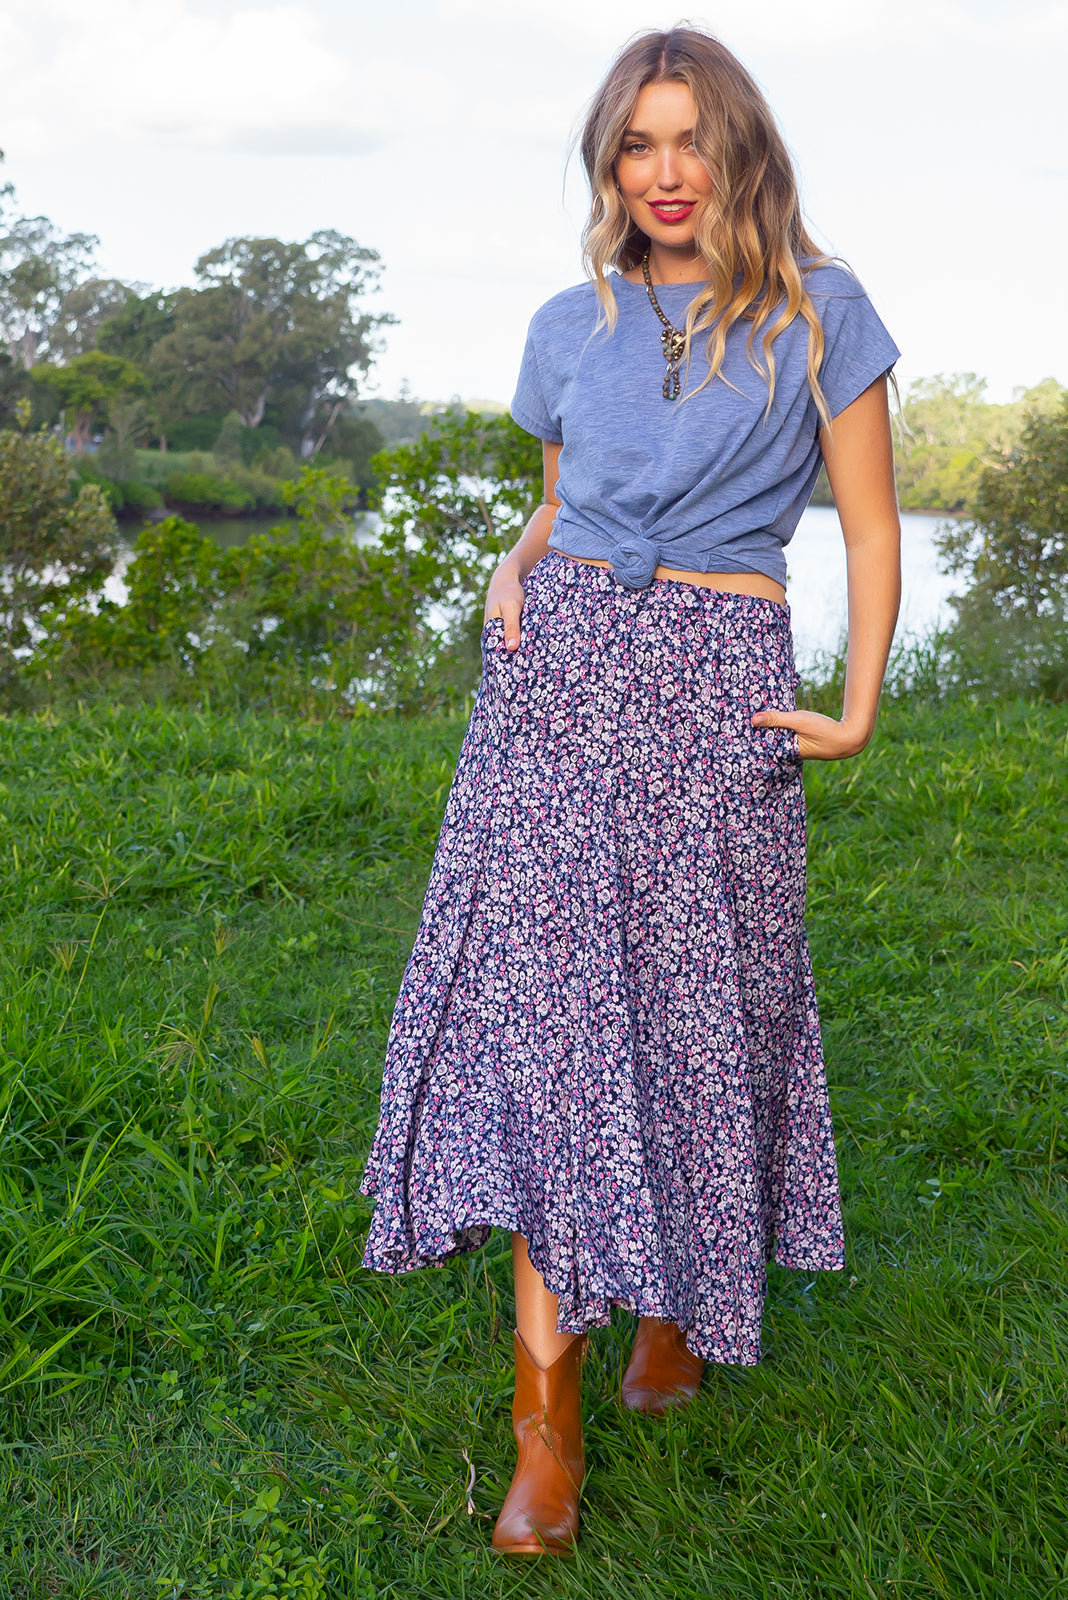 Avalon Alchemy Midi Skirt has elastic waistband which is fitted over the hips and waist but features full fishtail inserts for a full soft finish at the hemline made in a woven non stretch 100% rayon of inky base with a purple toned ditzy floral print.